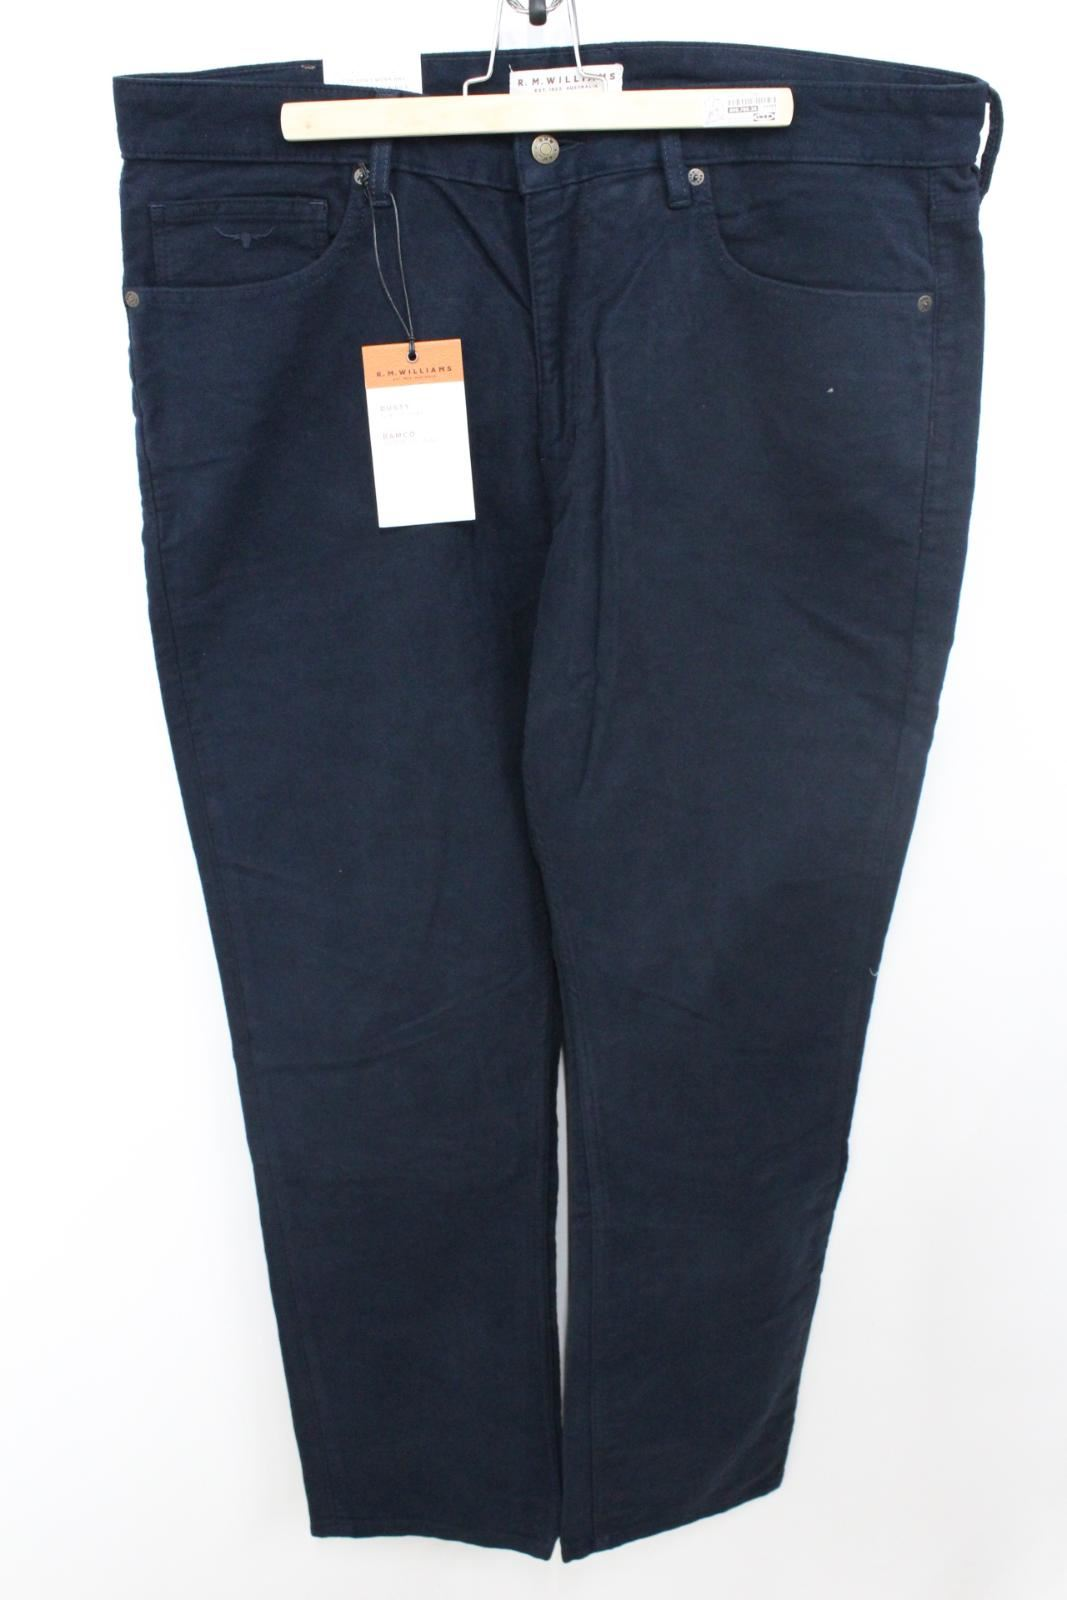 BNWT R.M. WILLIAMS Mens Ramco Regular Jeans Low Navy bluee Tapered Leg 32in 30L